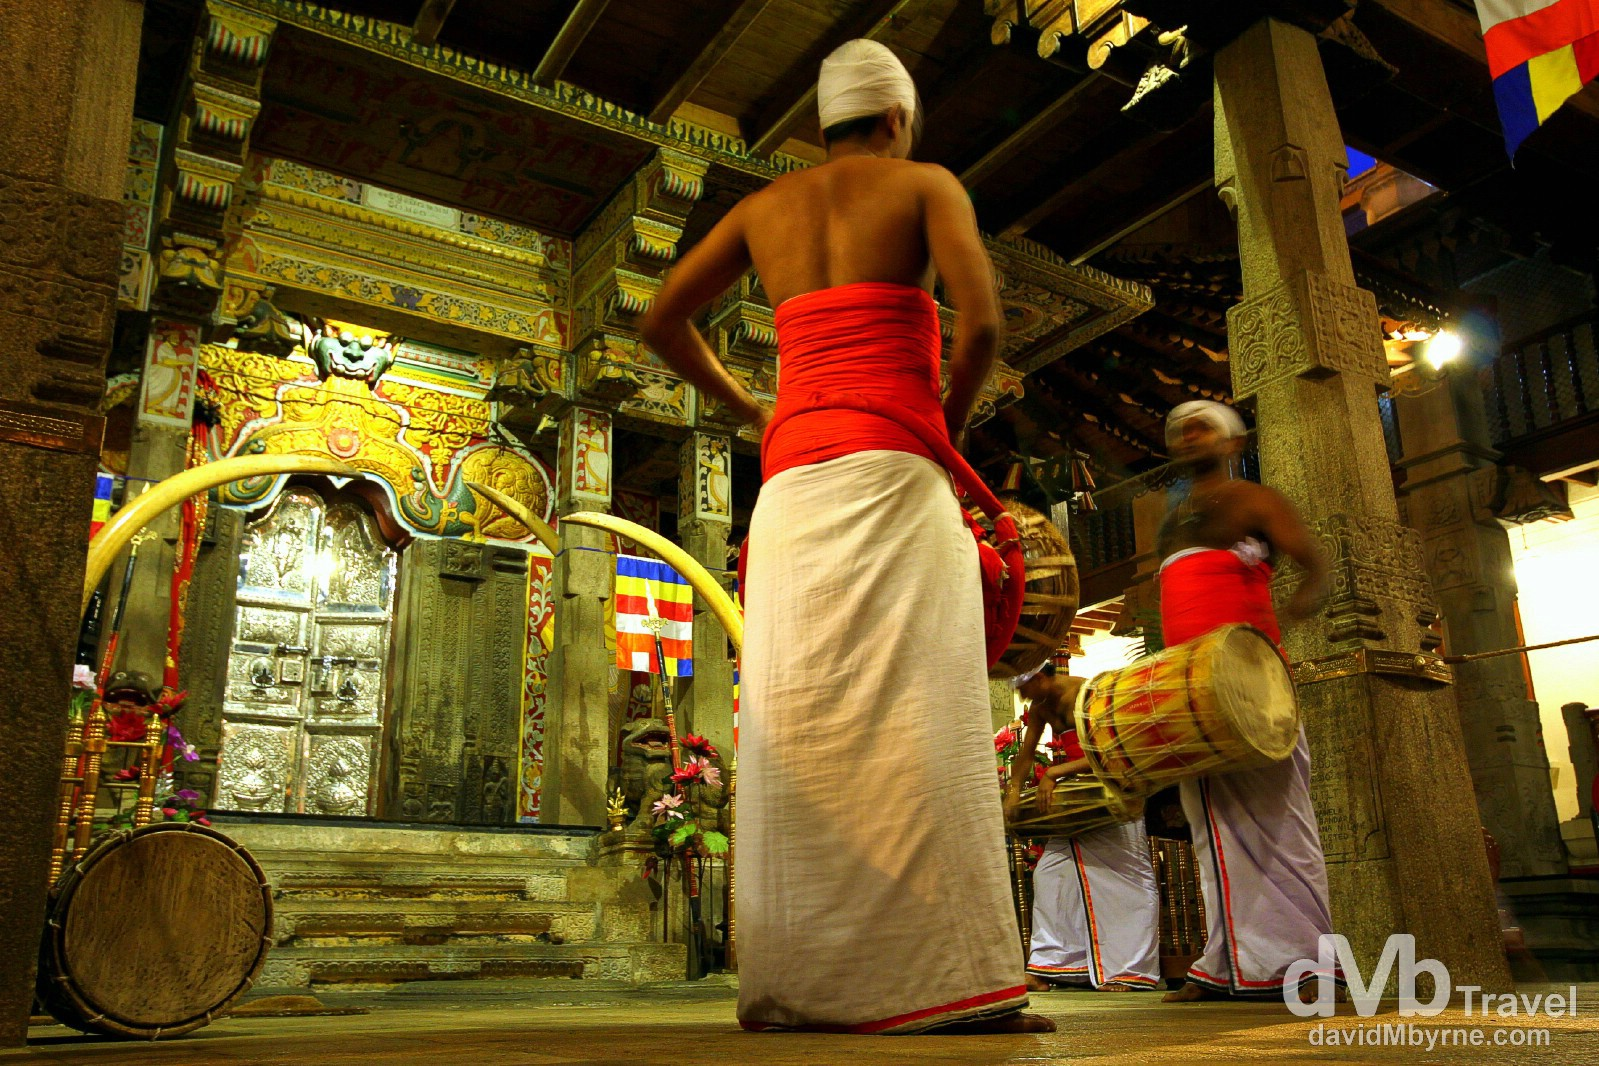 Inside the Temple of the Sacred Tooth Relic, Kandy, Sri Lanka. September 8th 2012.